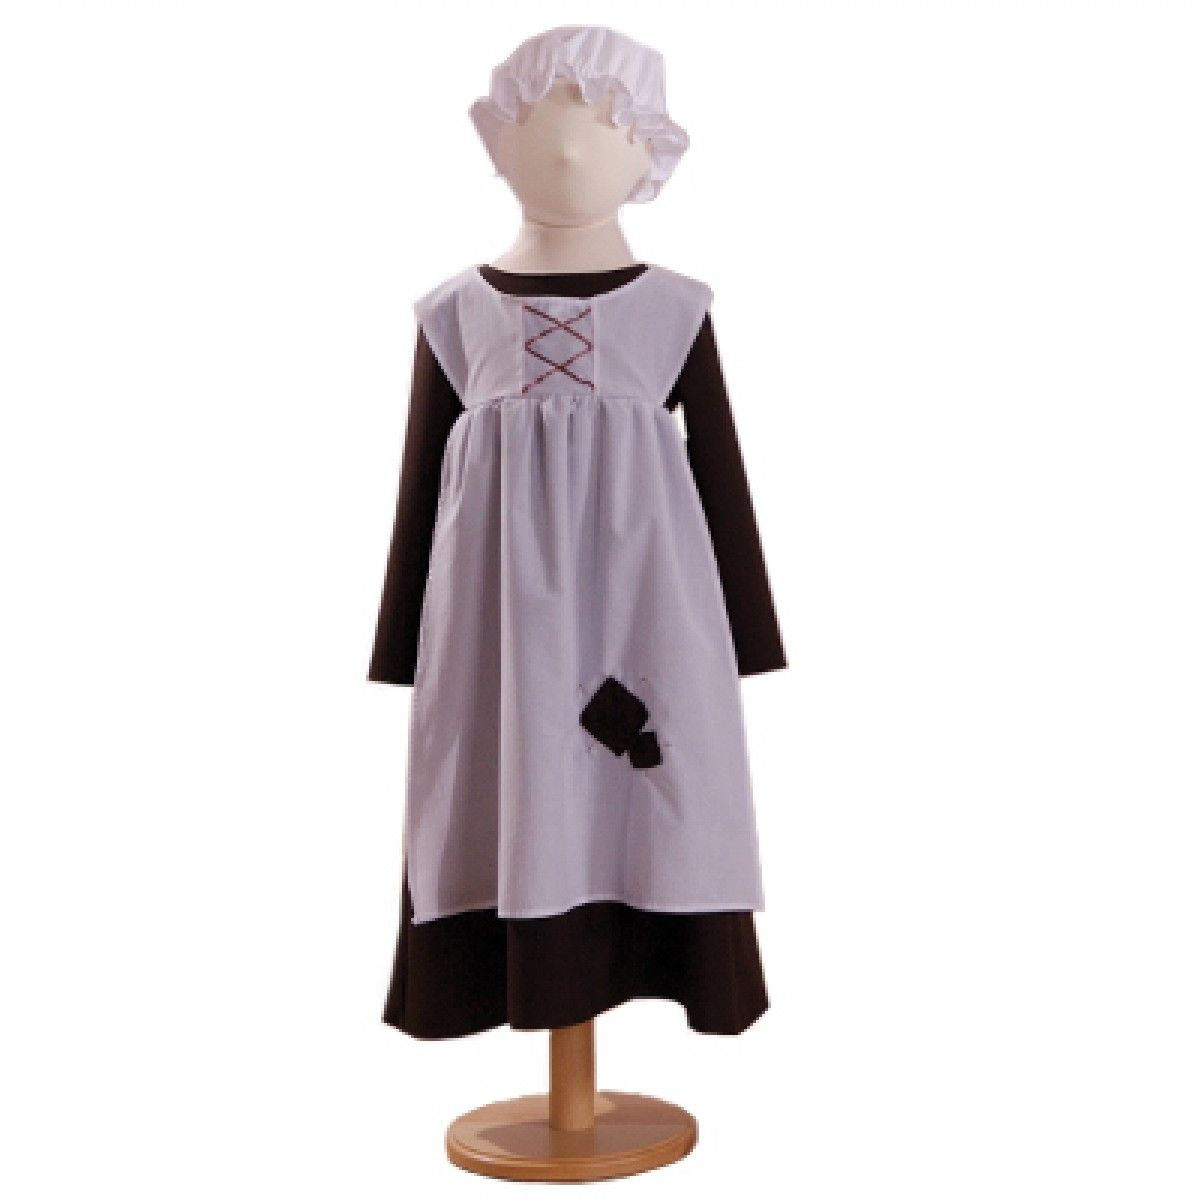 White apron fancy dress - Victorian Urchin Girl This Victorian Girls Costume Comes With A Brown Smock Style Dress White Apron And Mop Cap Great Costume For Dickensian Events